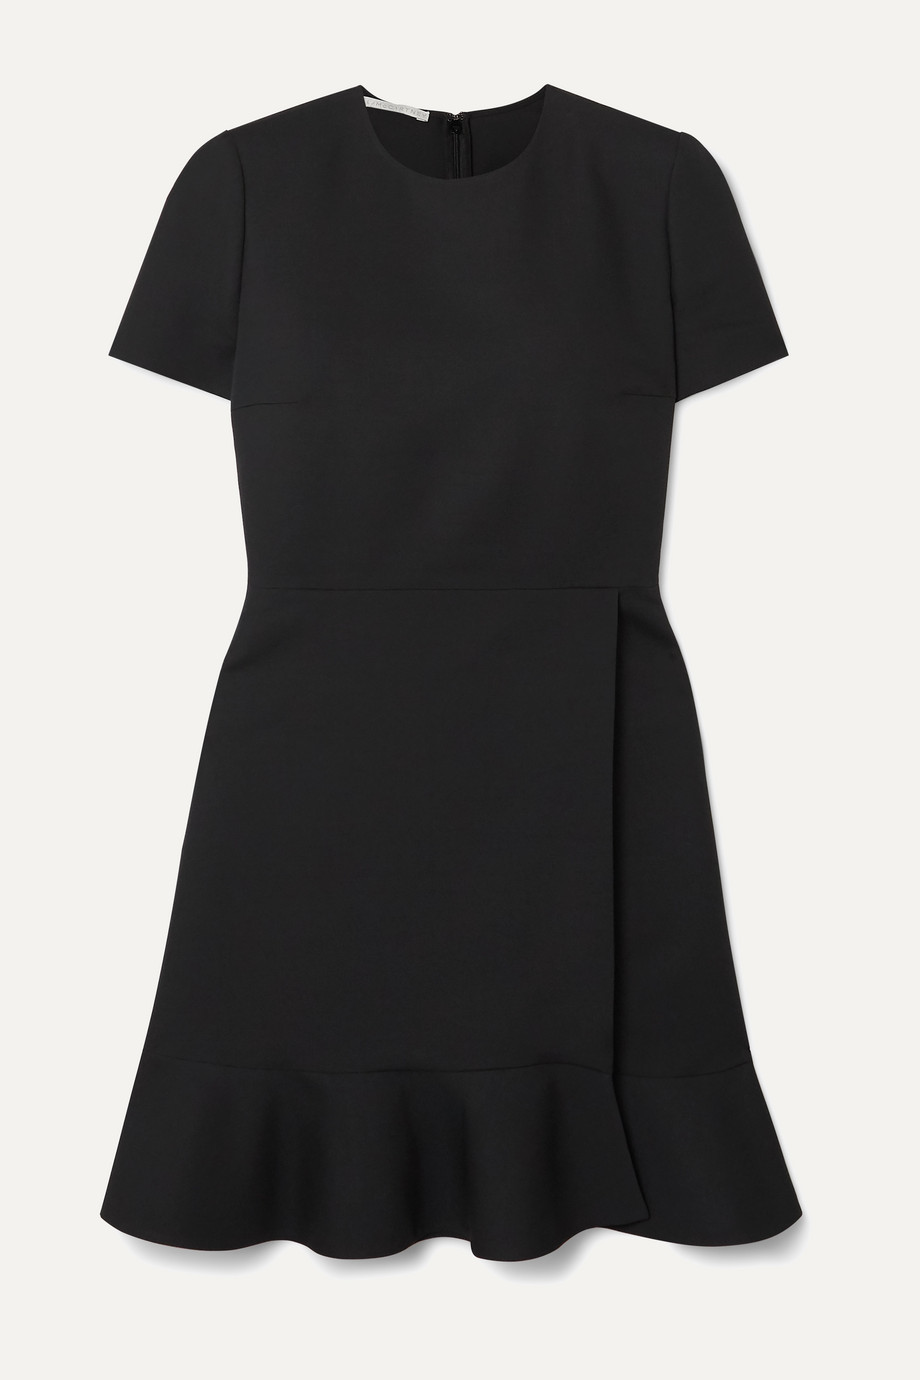 Stella McCartney Ruffled wool-blend dress